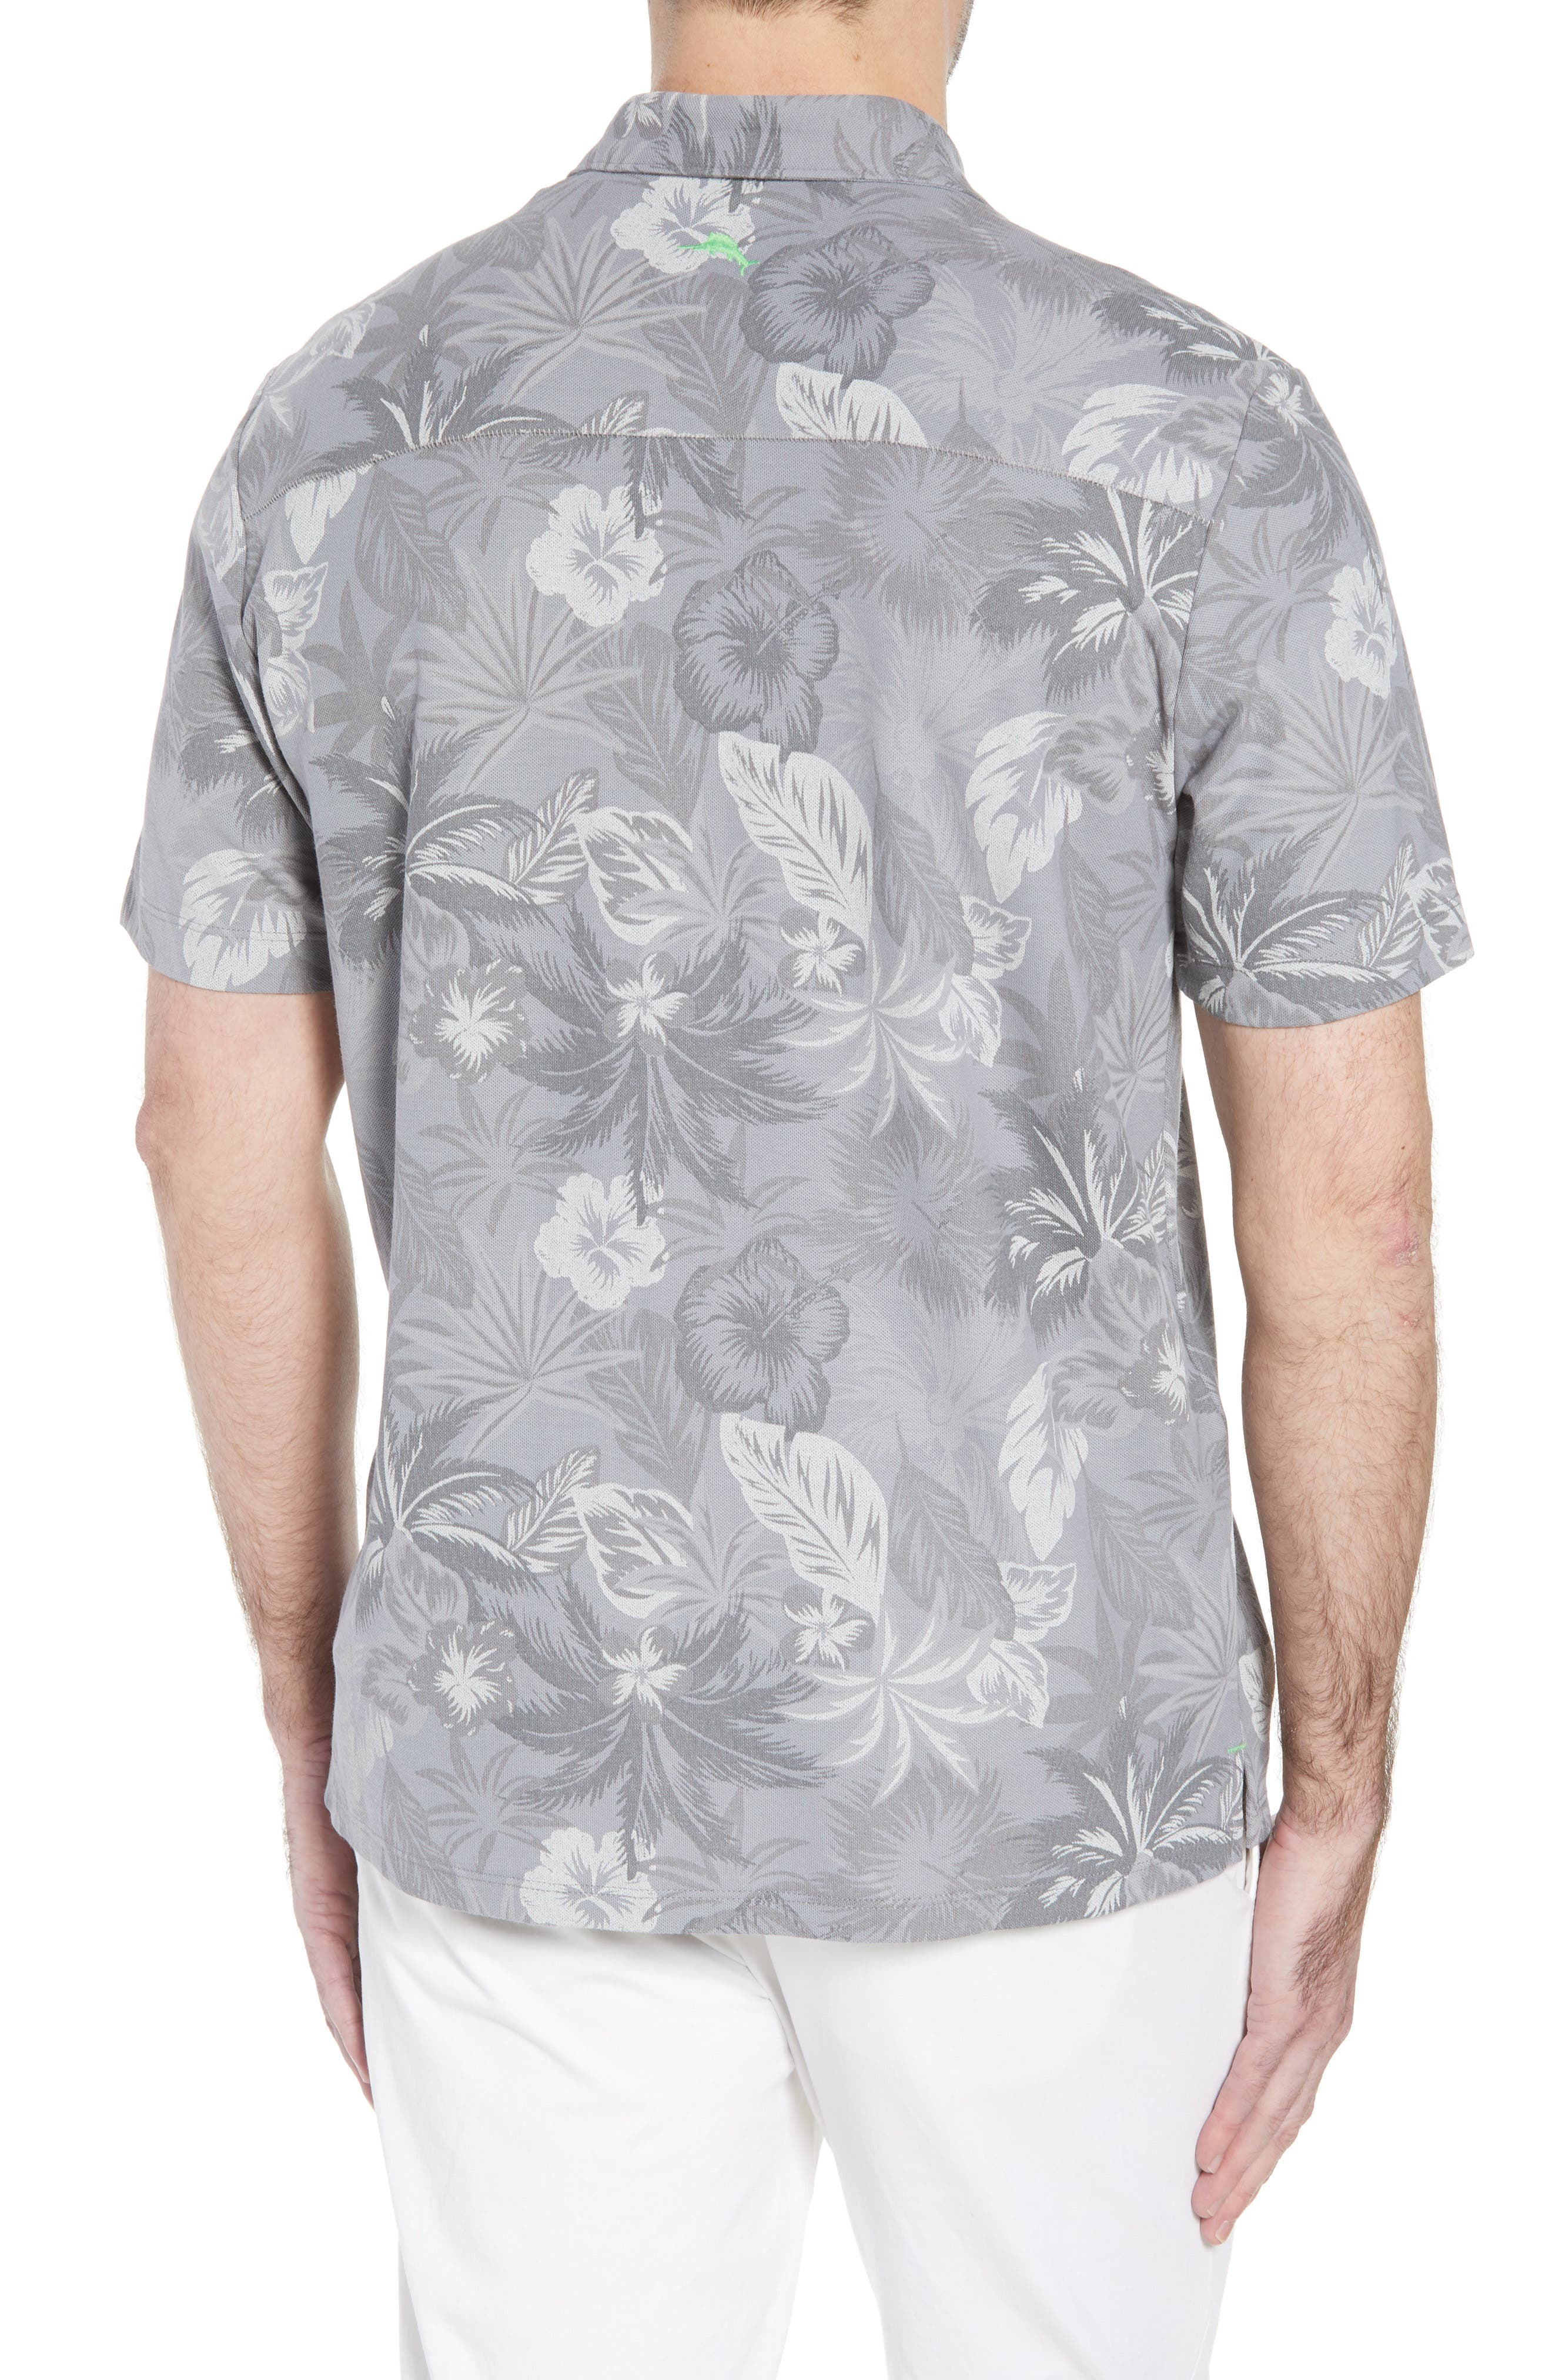 Fuego Floral Camp Shirt,                             Alternate thumbnail 2, color,                             Iced Slate